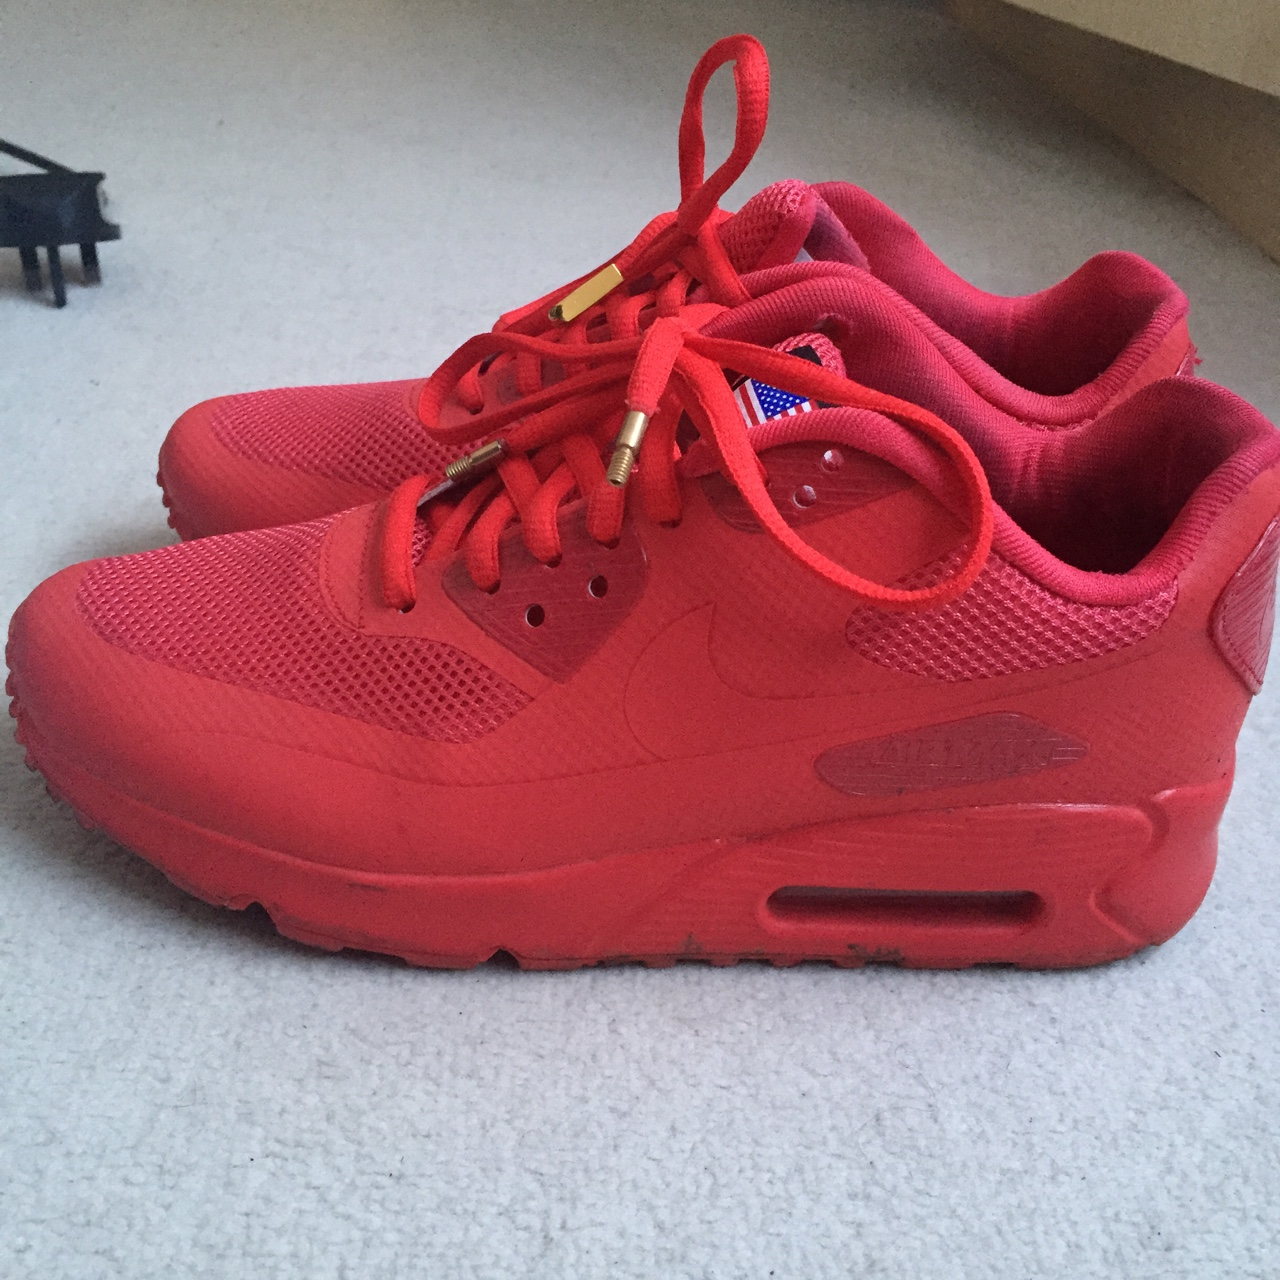 Nike Air Max 90 Independence Day's (REPLICAS). Size